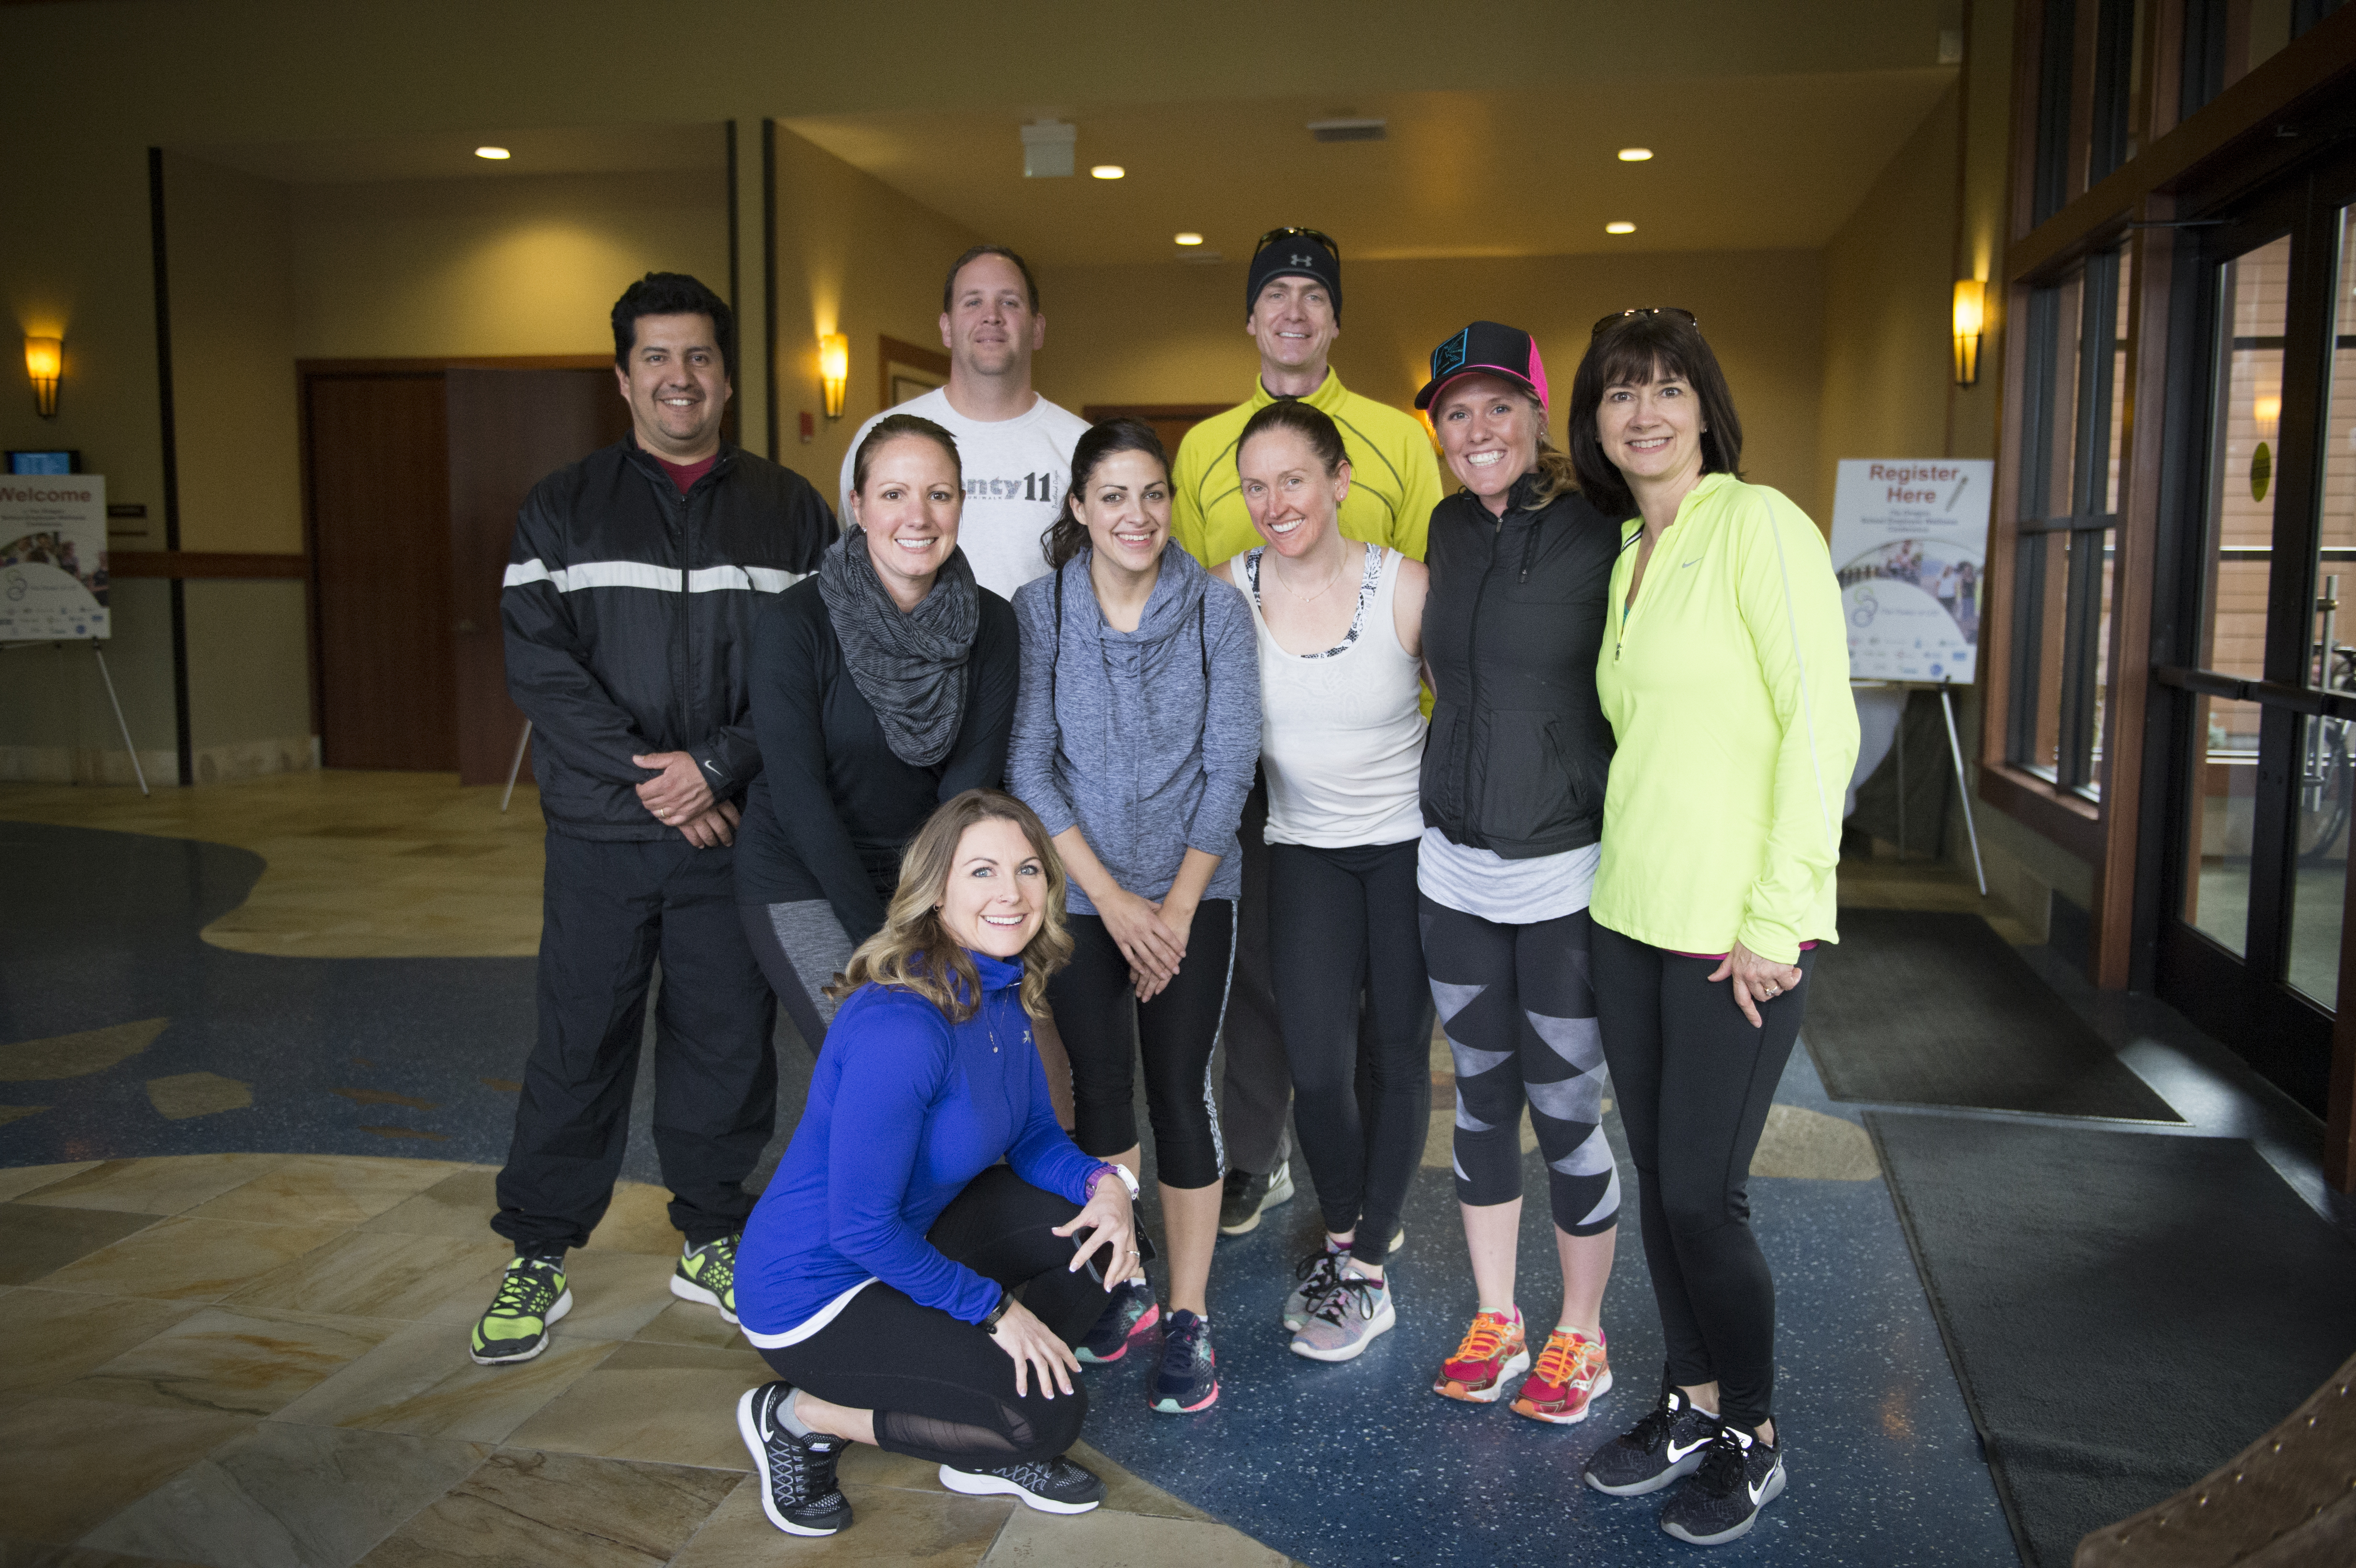 Group of people in workout gear smiling